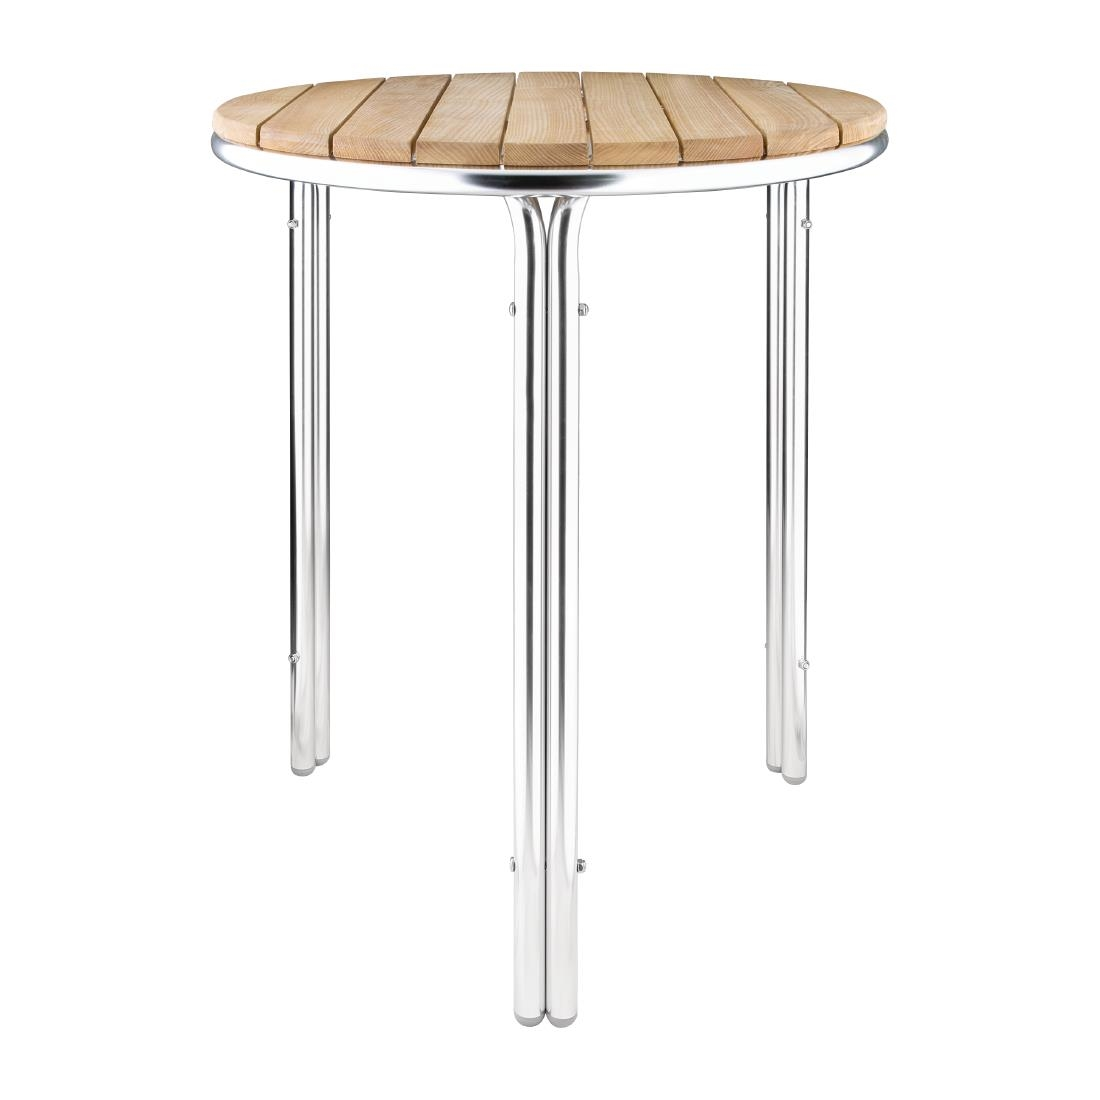 Aluminium + Ash Table GL98 - Round